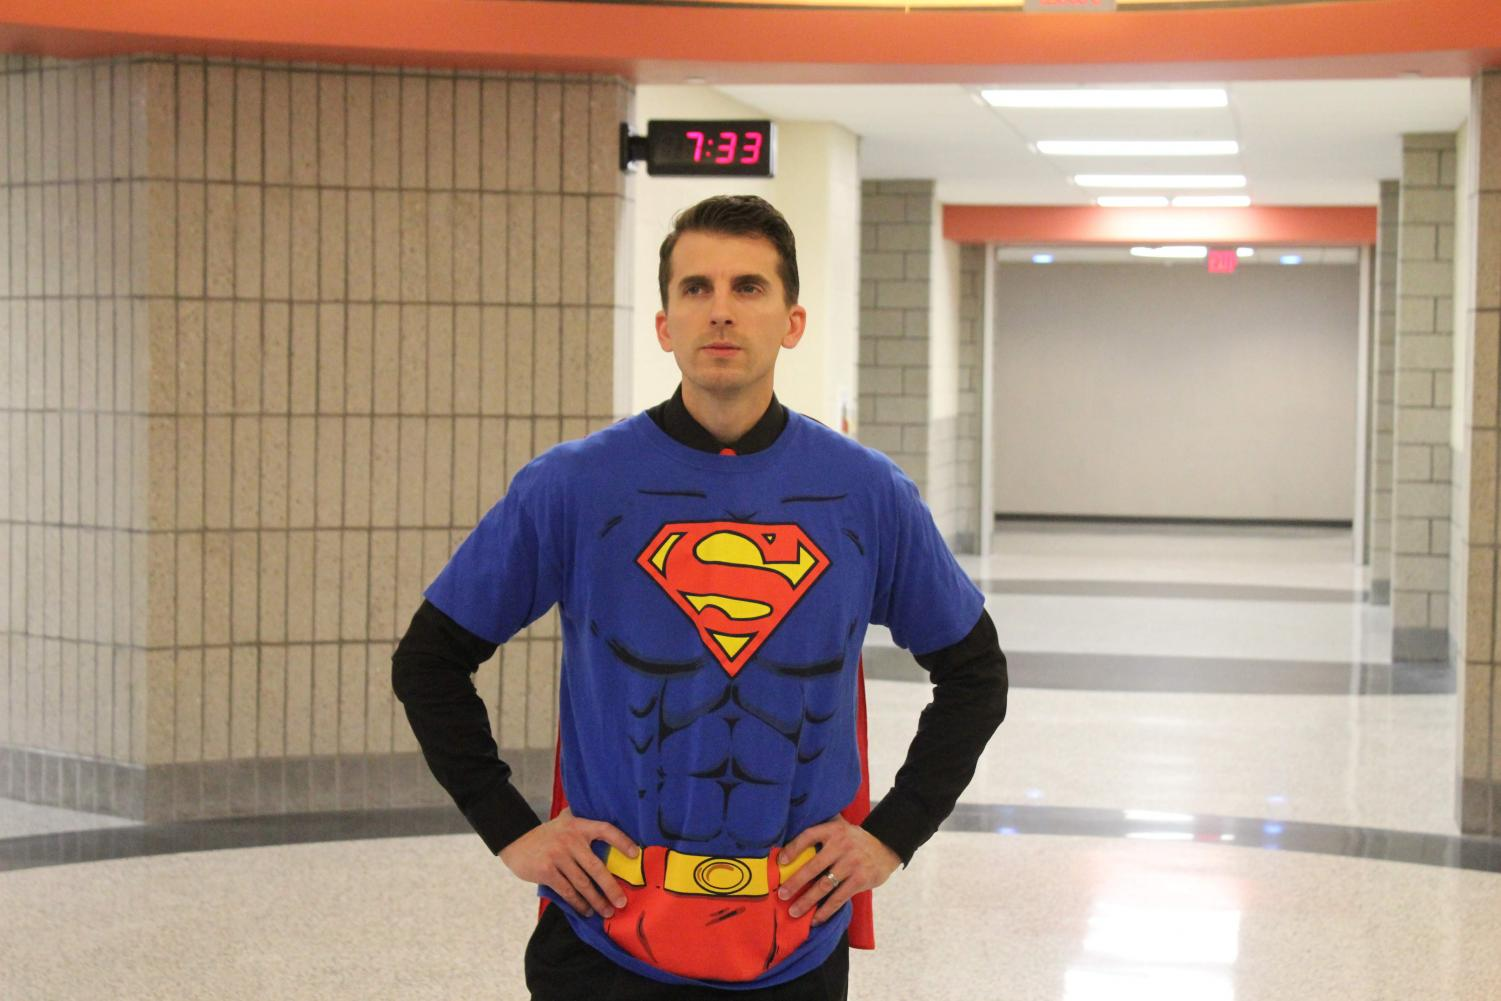 HERE TO SAVE THE DAY! Mr. Allemang dons his Superman costume on Halloween.